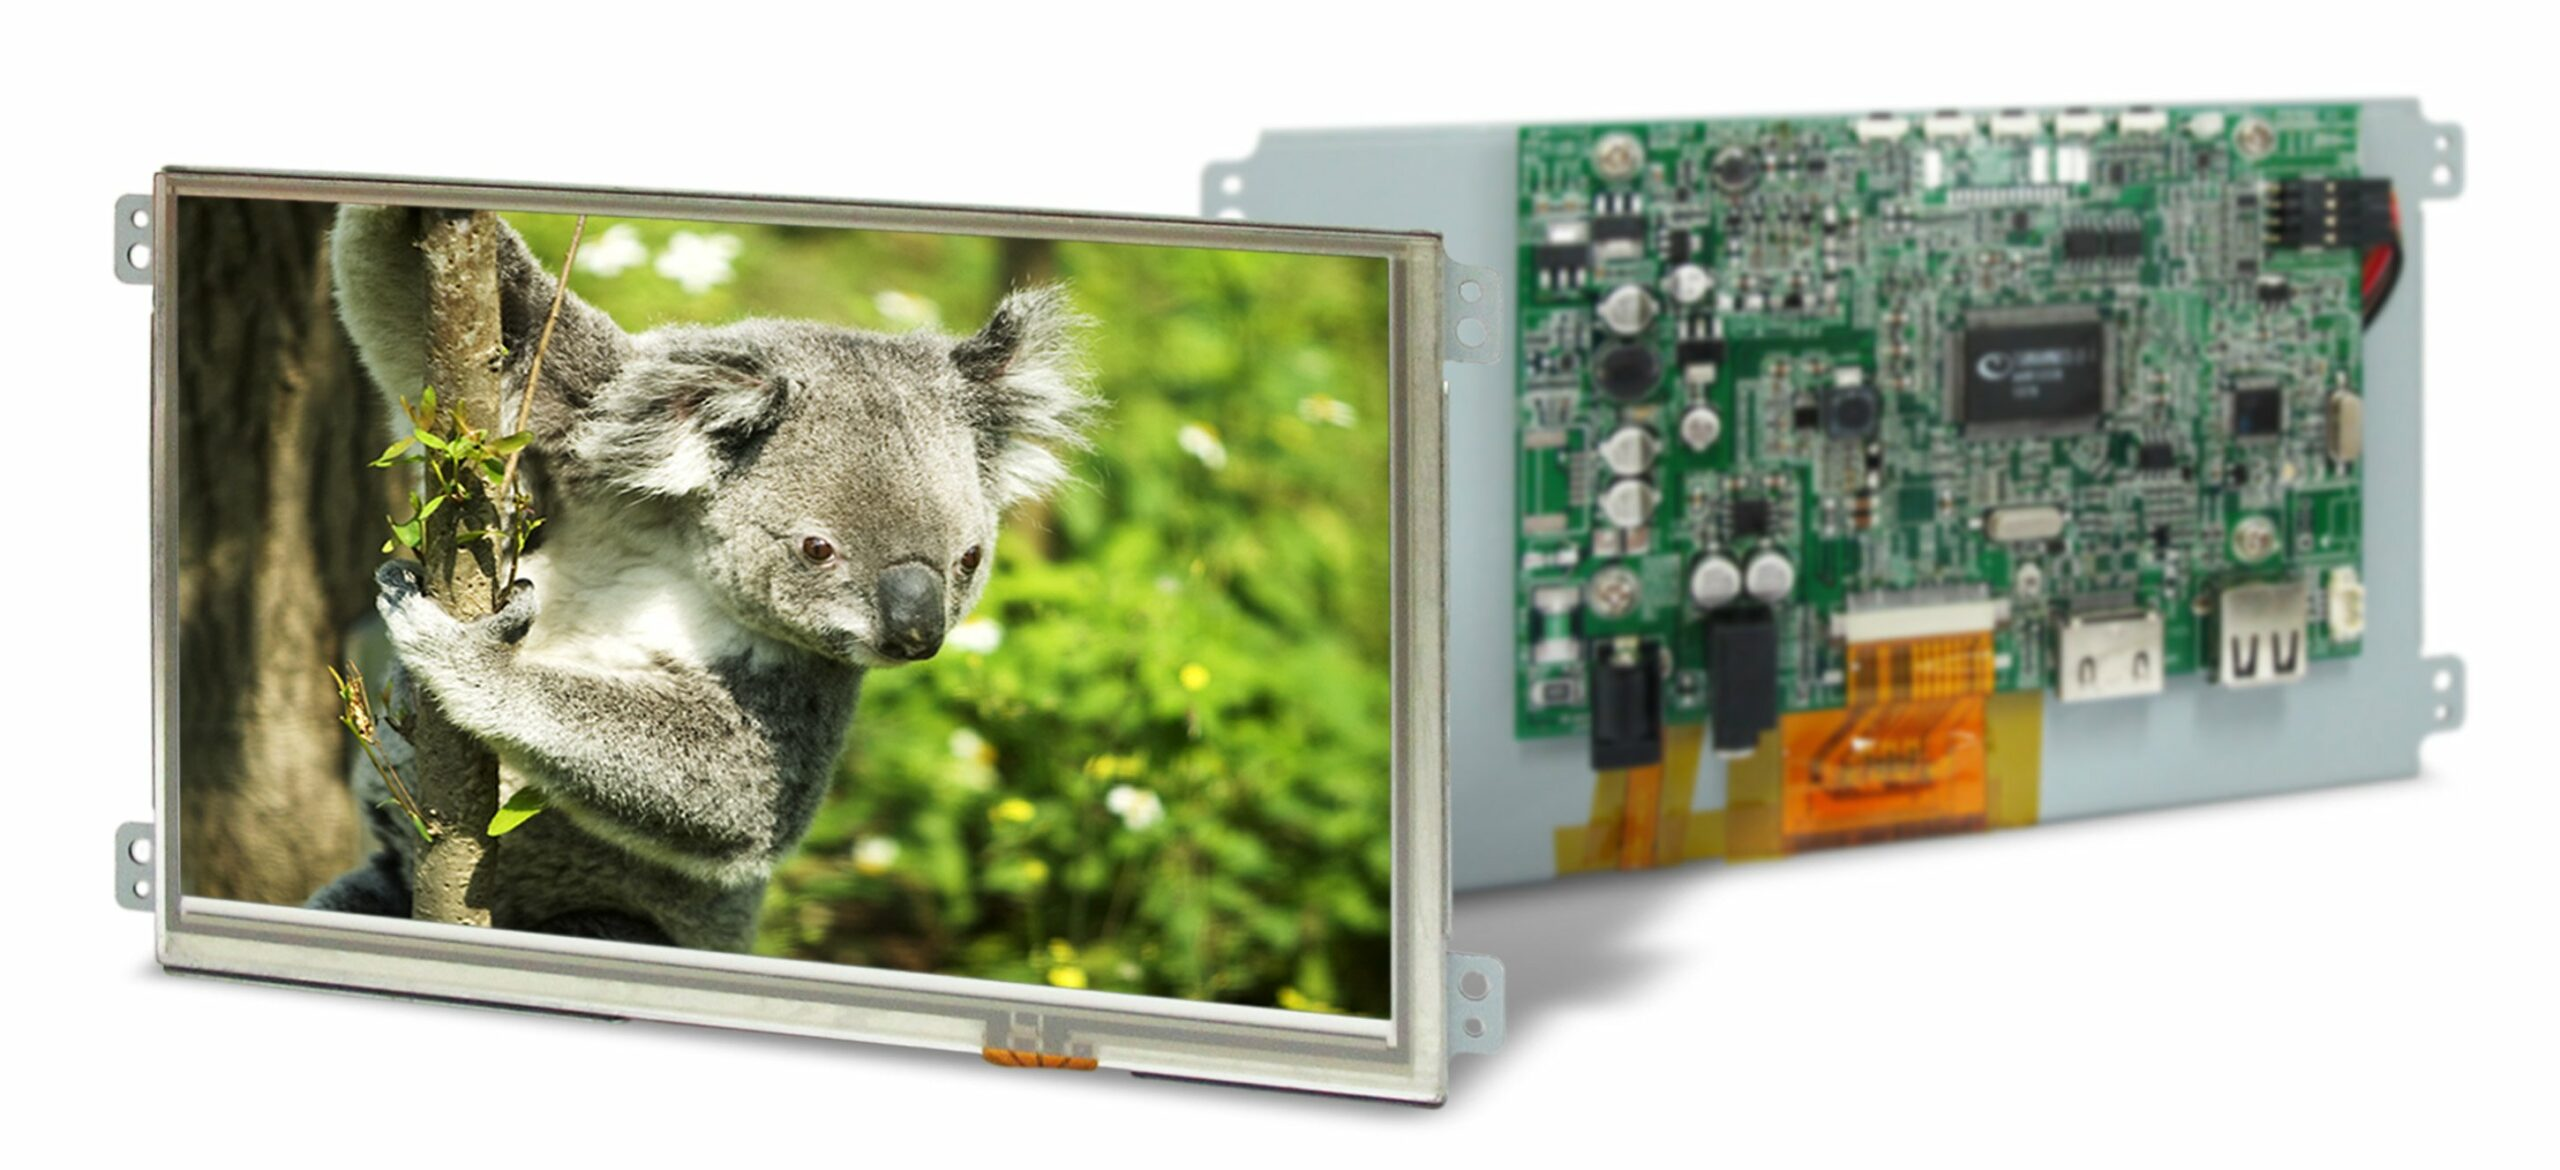 ILP150X501U-FNR 15″ Display Bright!